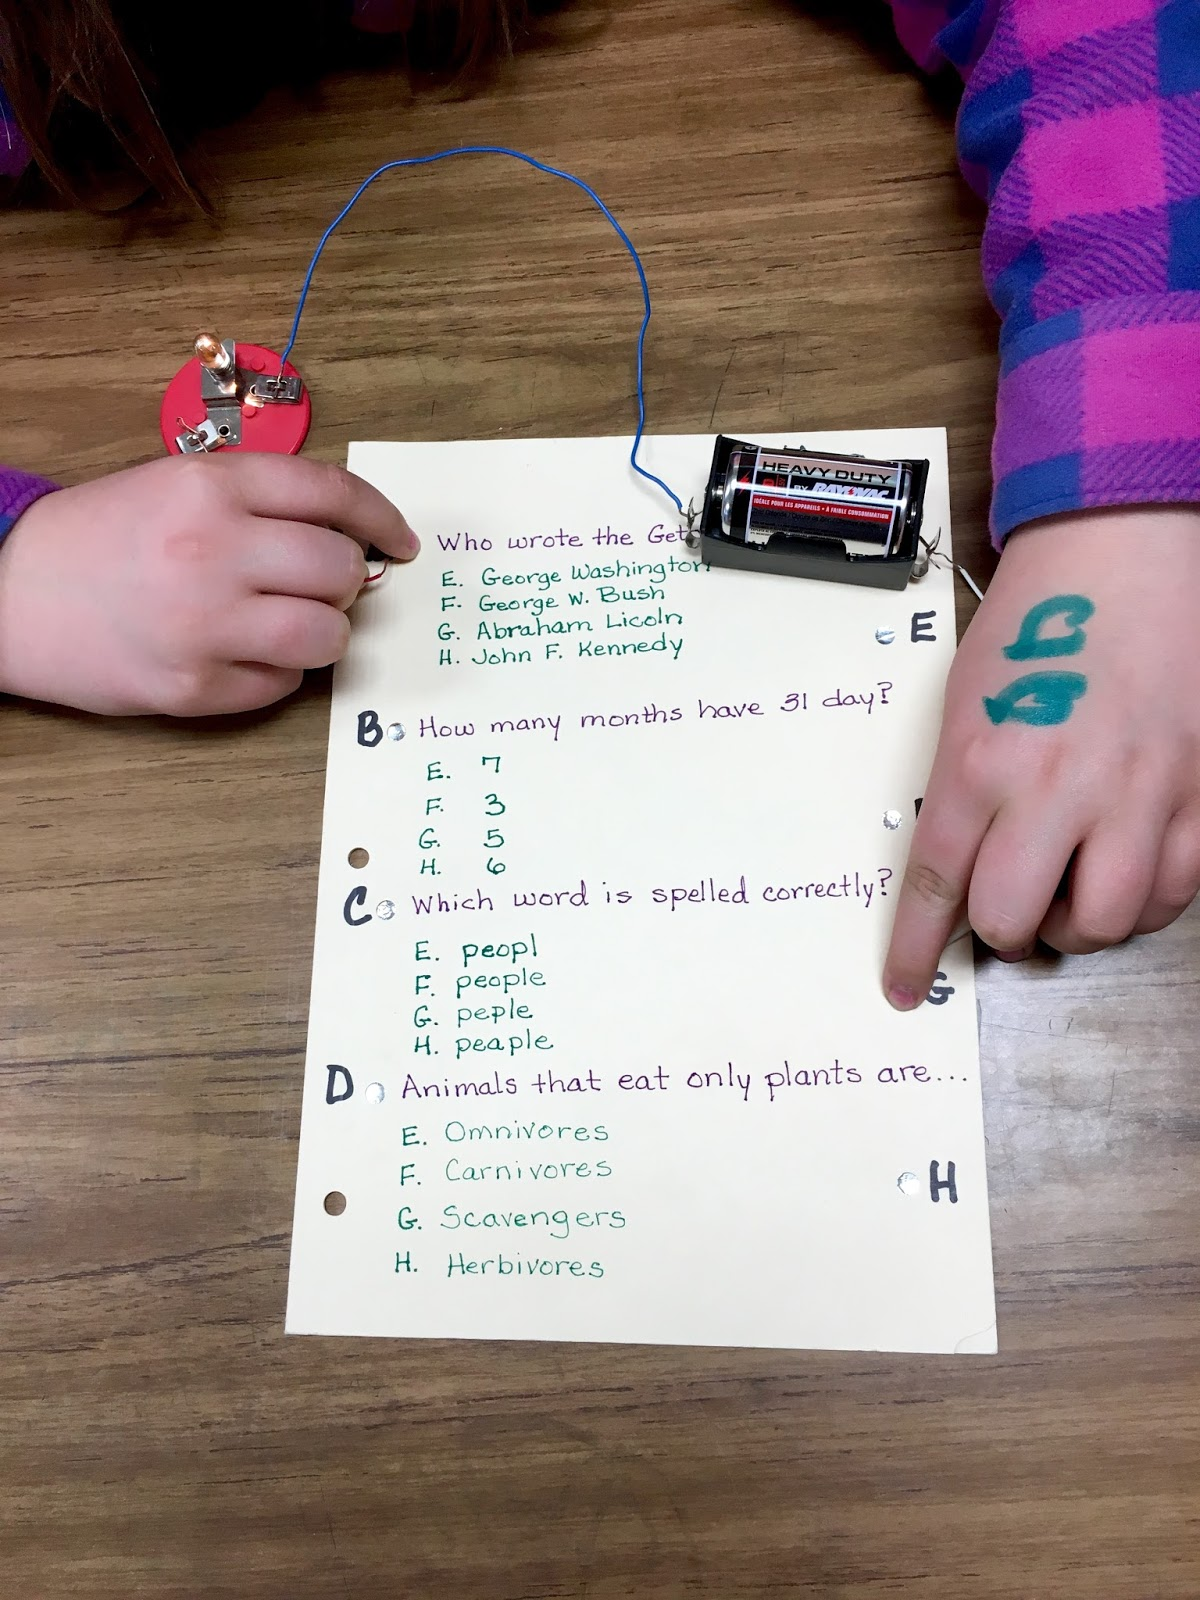 Making A Circuit Quiz Board Everything About Wiring Diagram Electronic Owl Teaching Electrical Folders Rh Owlaboutteaching Missfrancis Blogspot Com Science Project Boards Backside